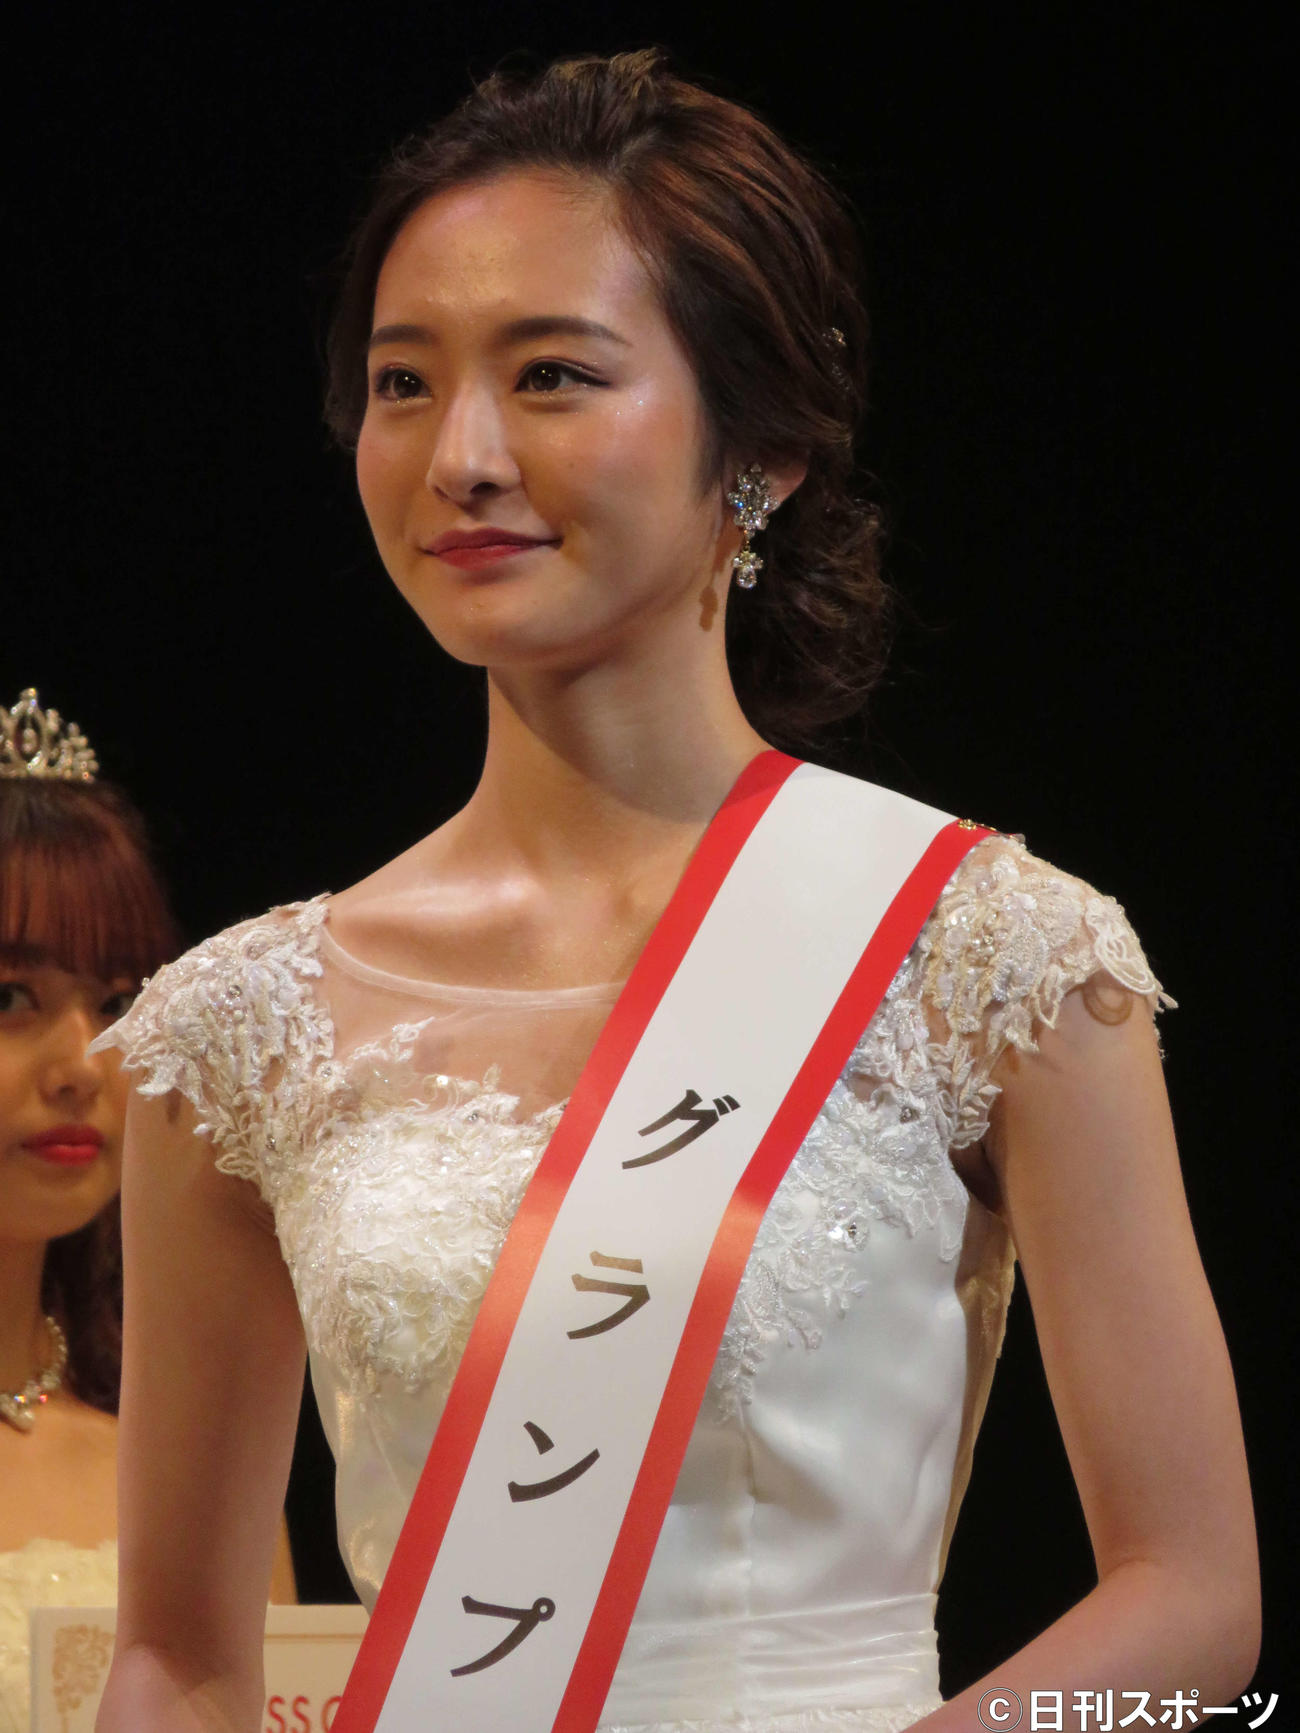 「MISS OF MISS CAMPUS QUEEN CONTEST 2021 supported by リゼクリニック」でグランプリを受賞した神谷明采さん(撮影・三須佳夏)